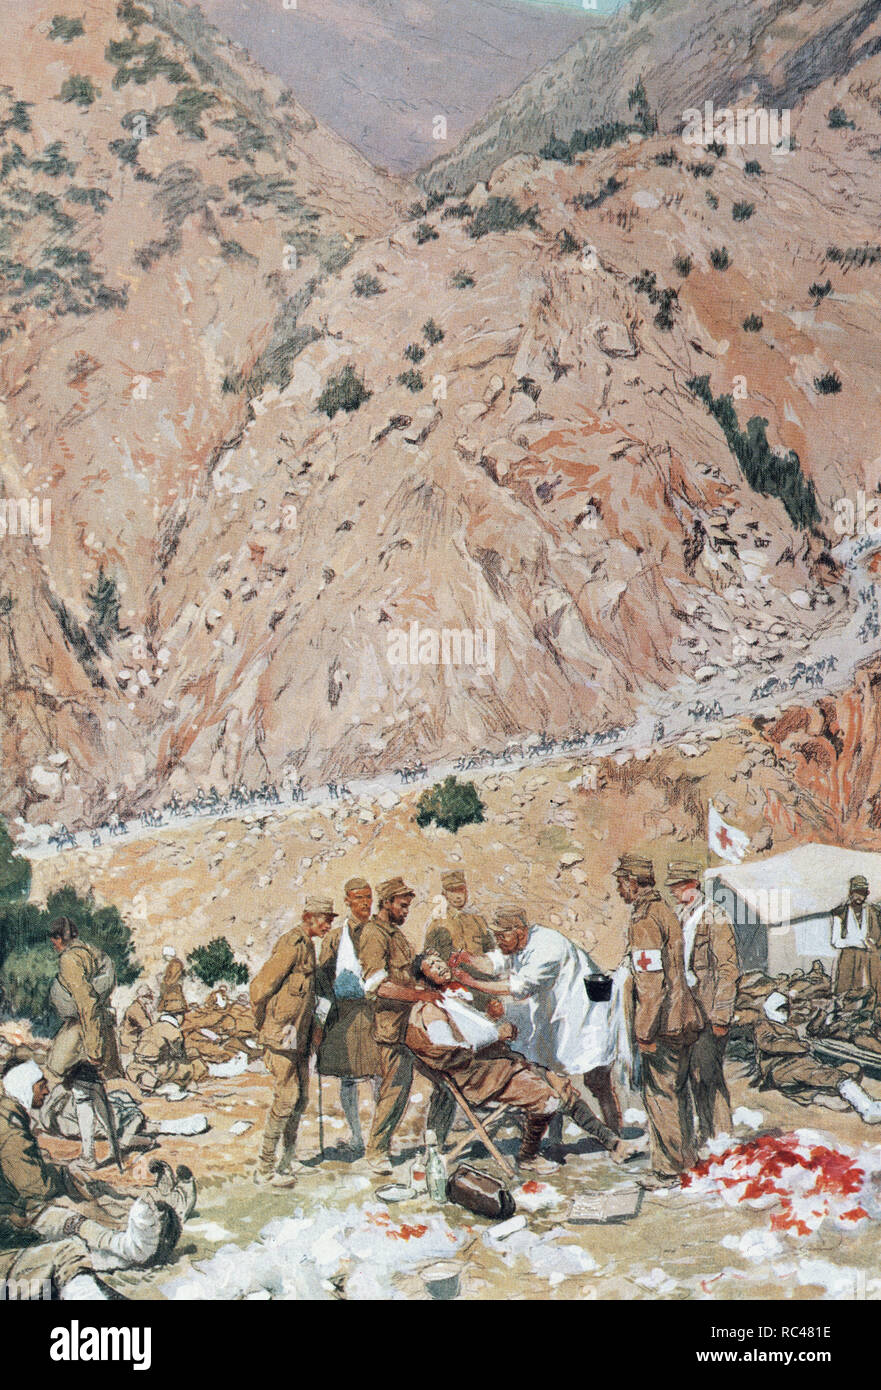 Second Balkan War, 1913. Field hospital of the Greek army at the entrance of the Kresna Gorges. Watercolor by Georges Scott, 1913. - Stock Image